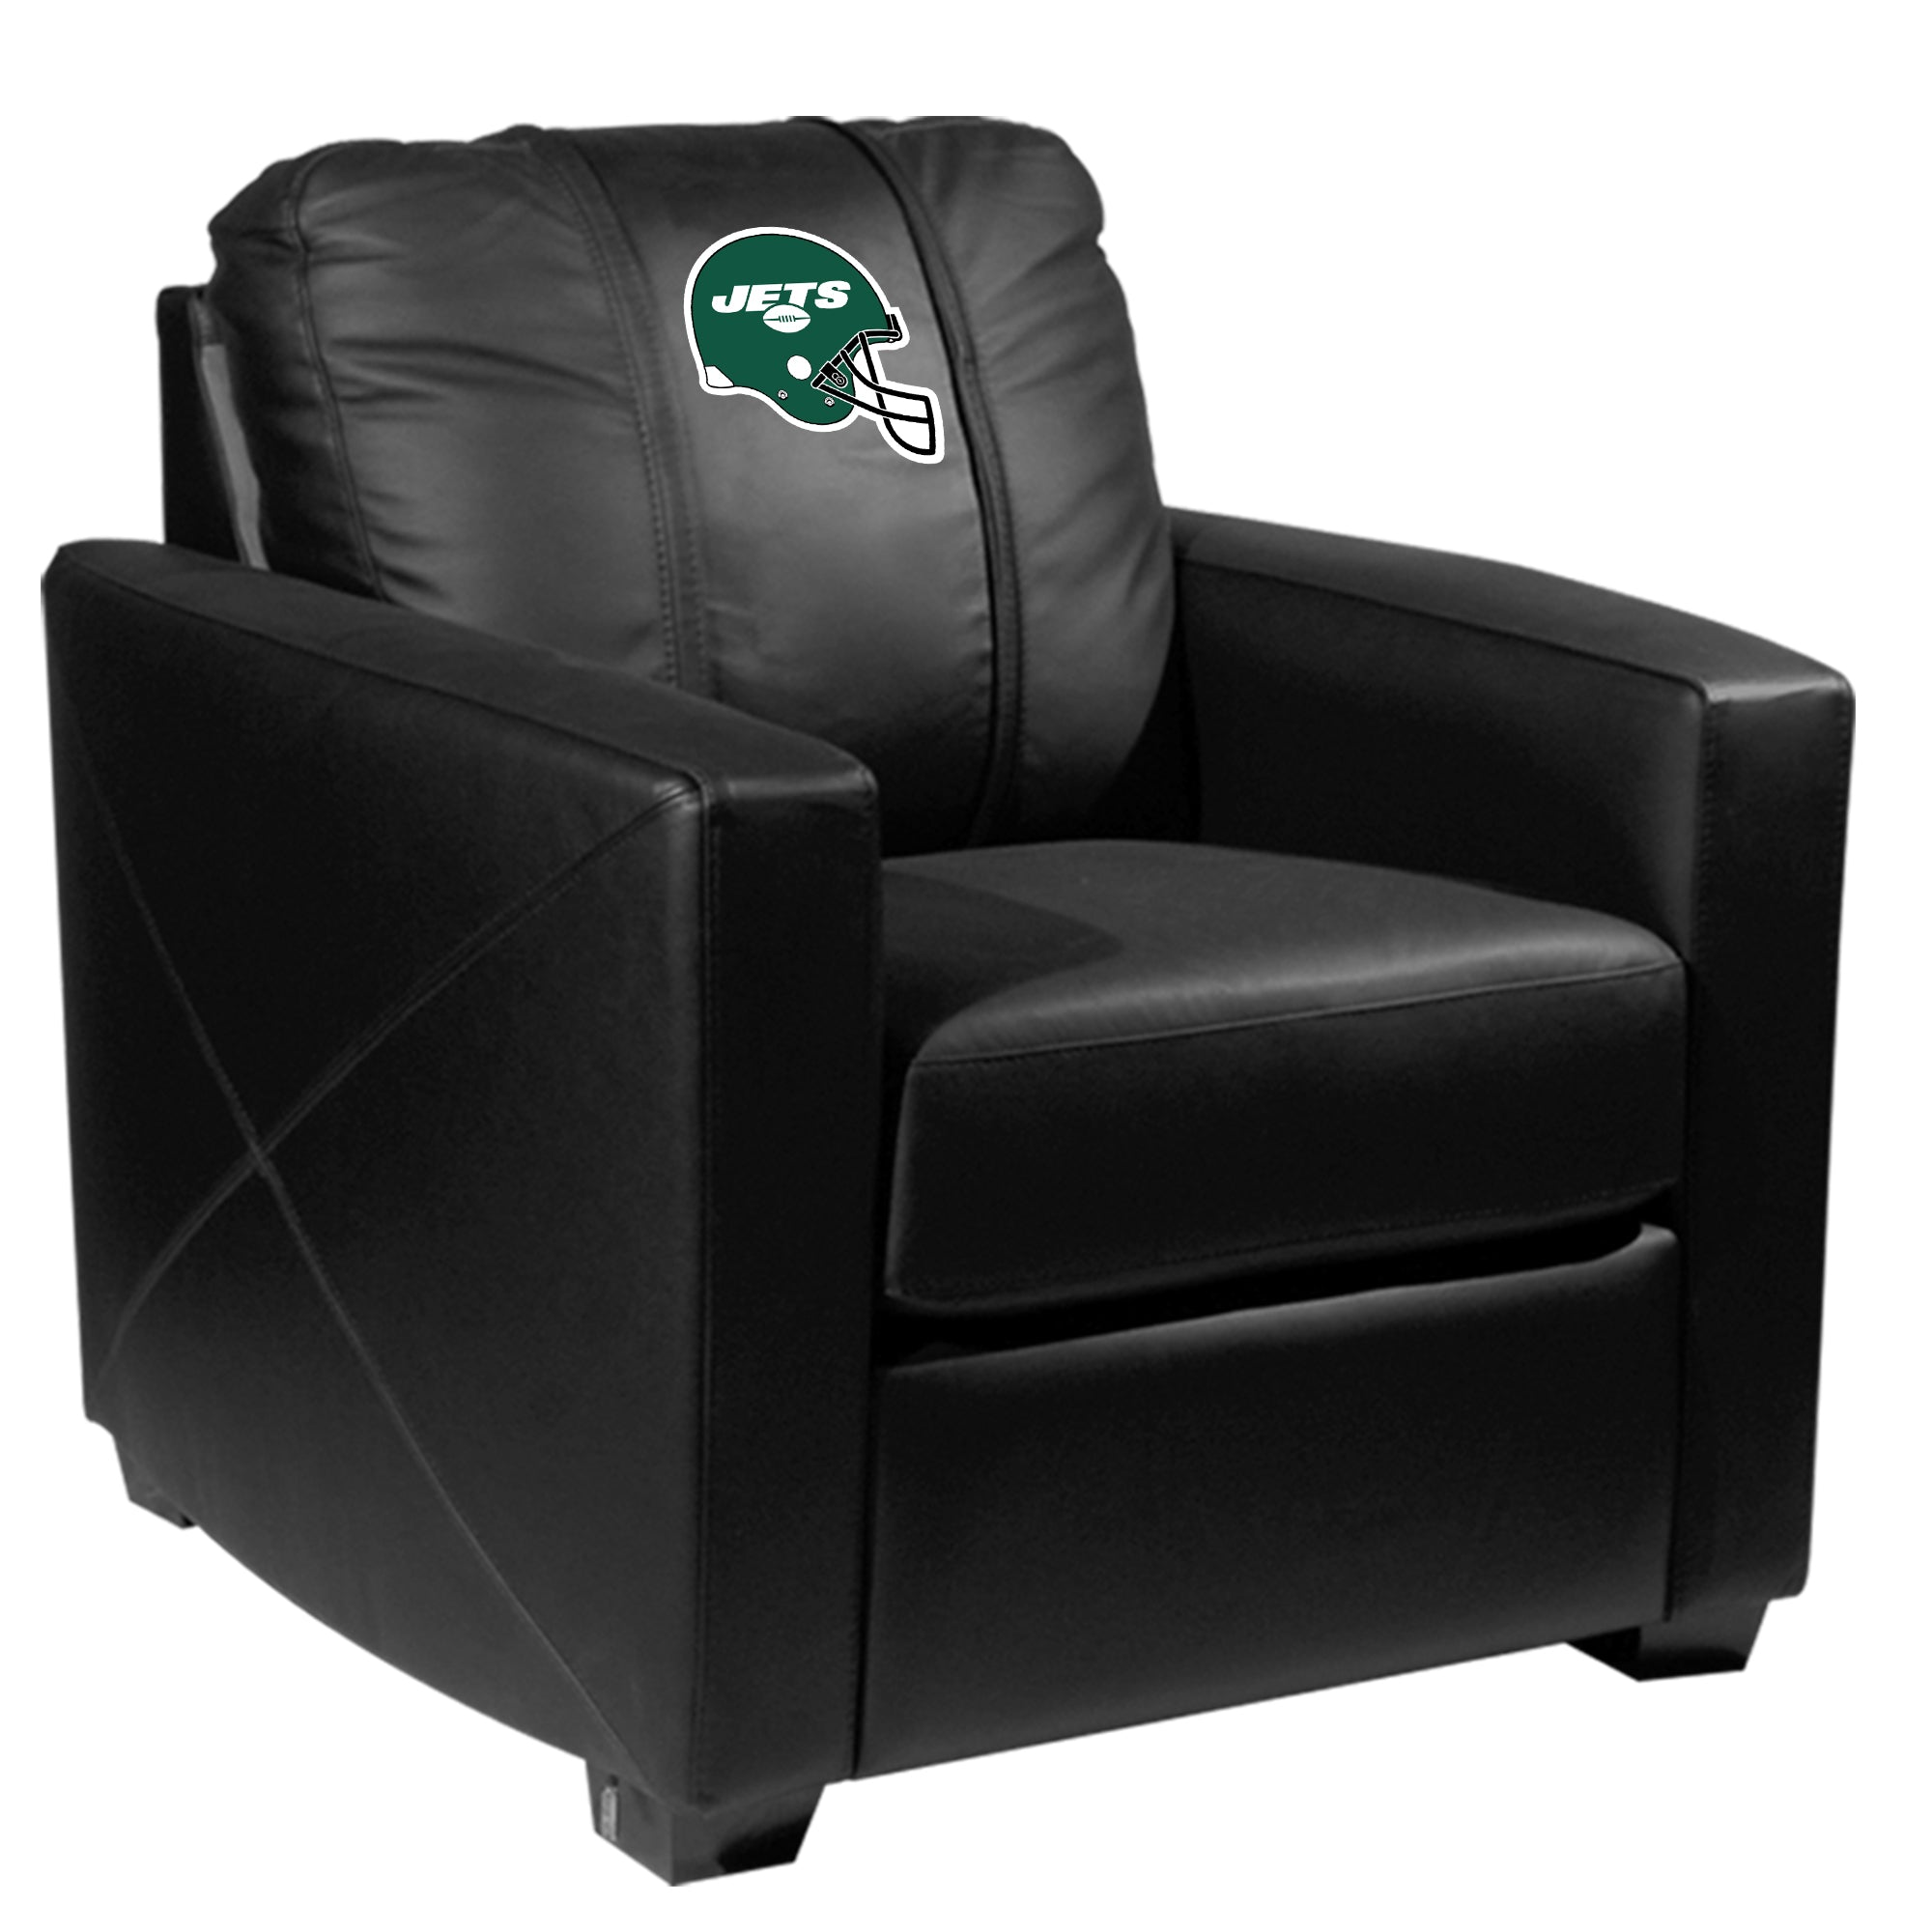 Silver Club Chair with  New York Jets Helmet Logo